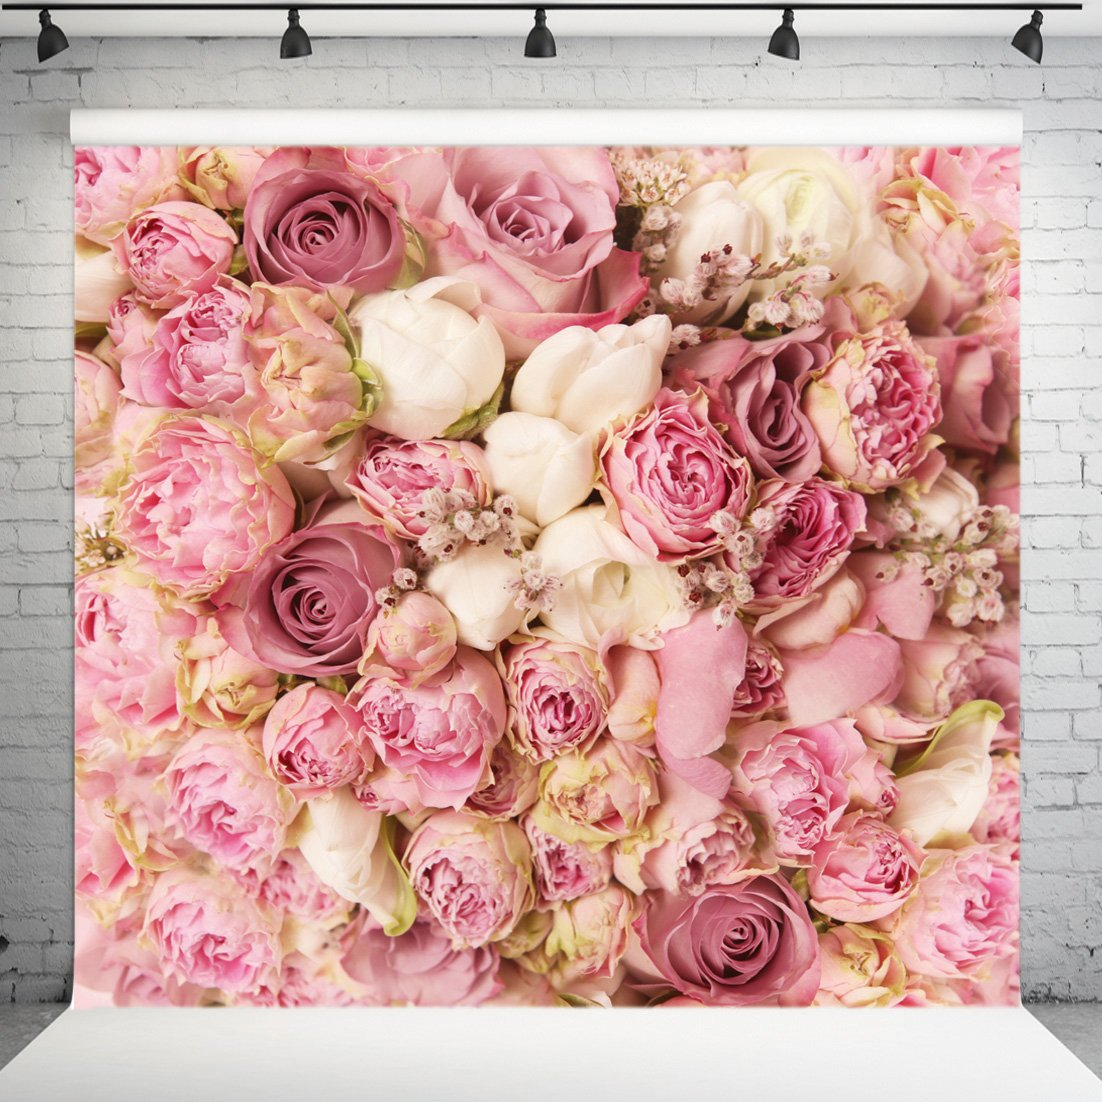 WOLADA 8x8ft Rose Floral Party Wedding Backdrop for Photorgaphy Baby Shower Marriage Photo Backdrop for Studio Props 9604